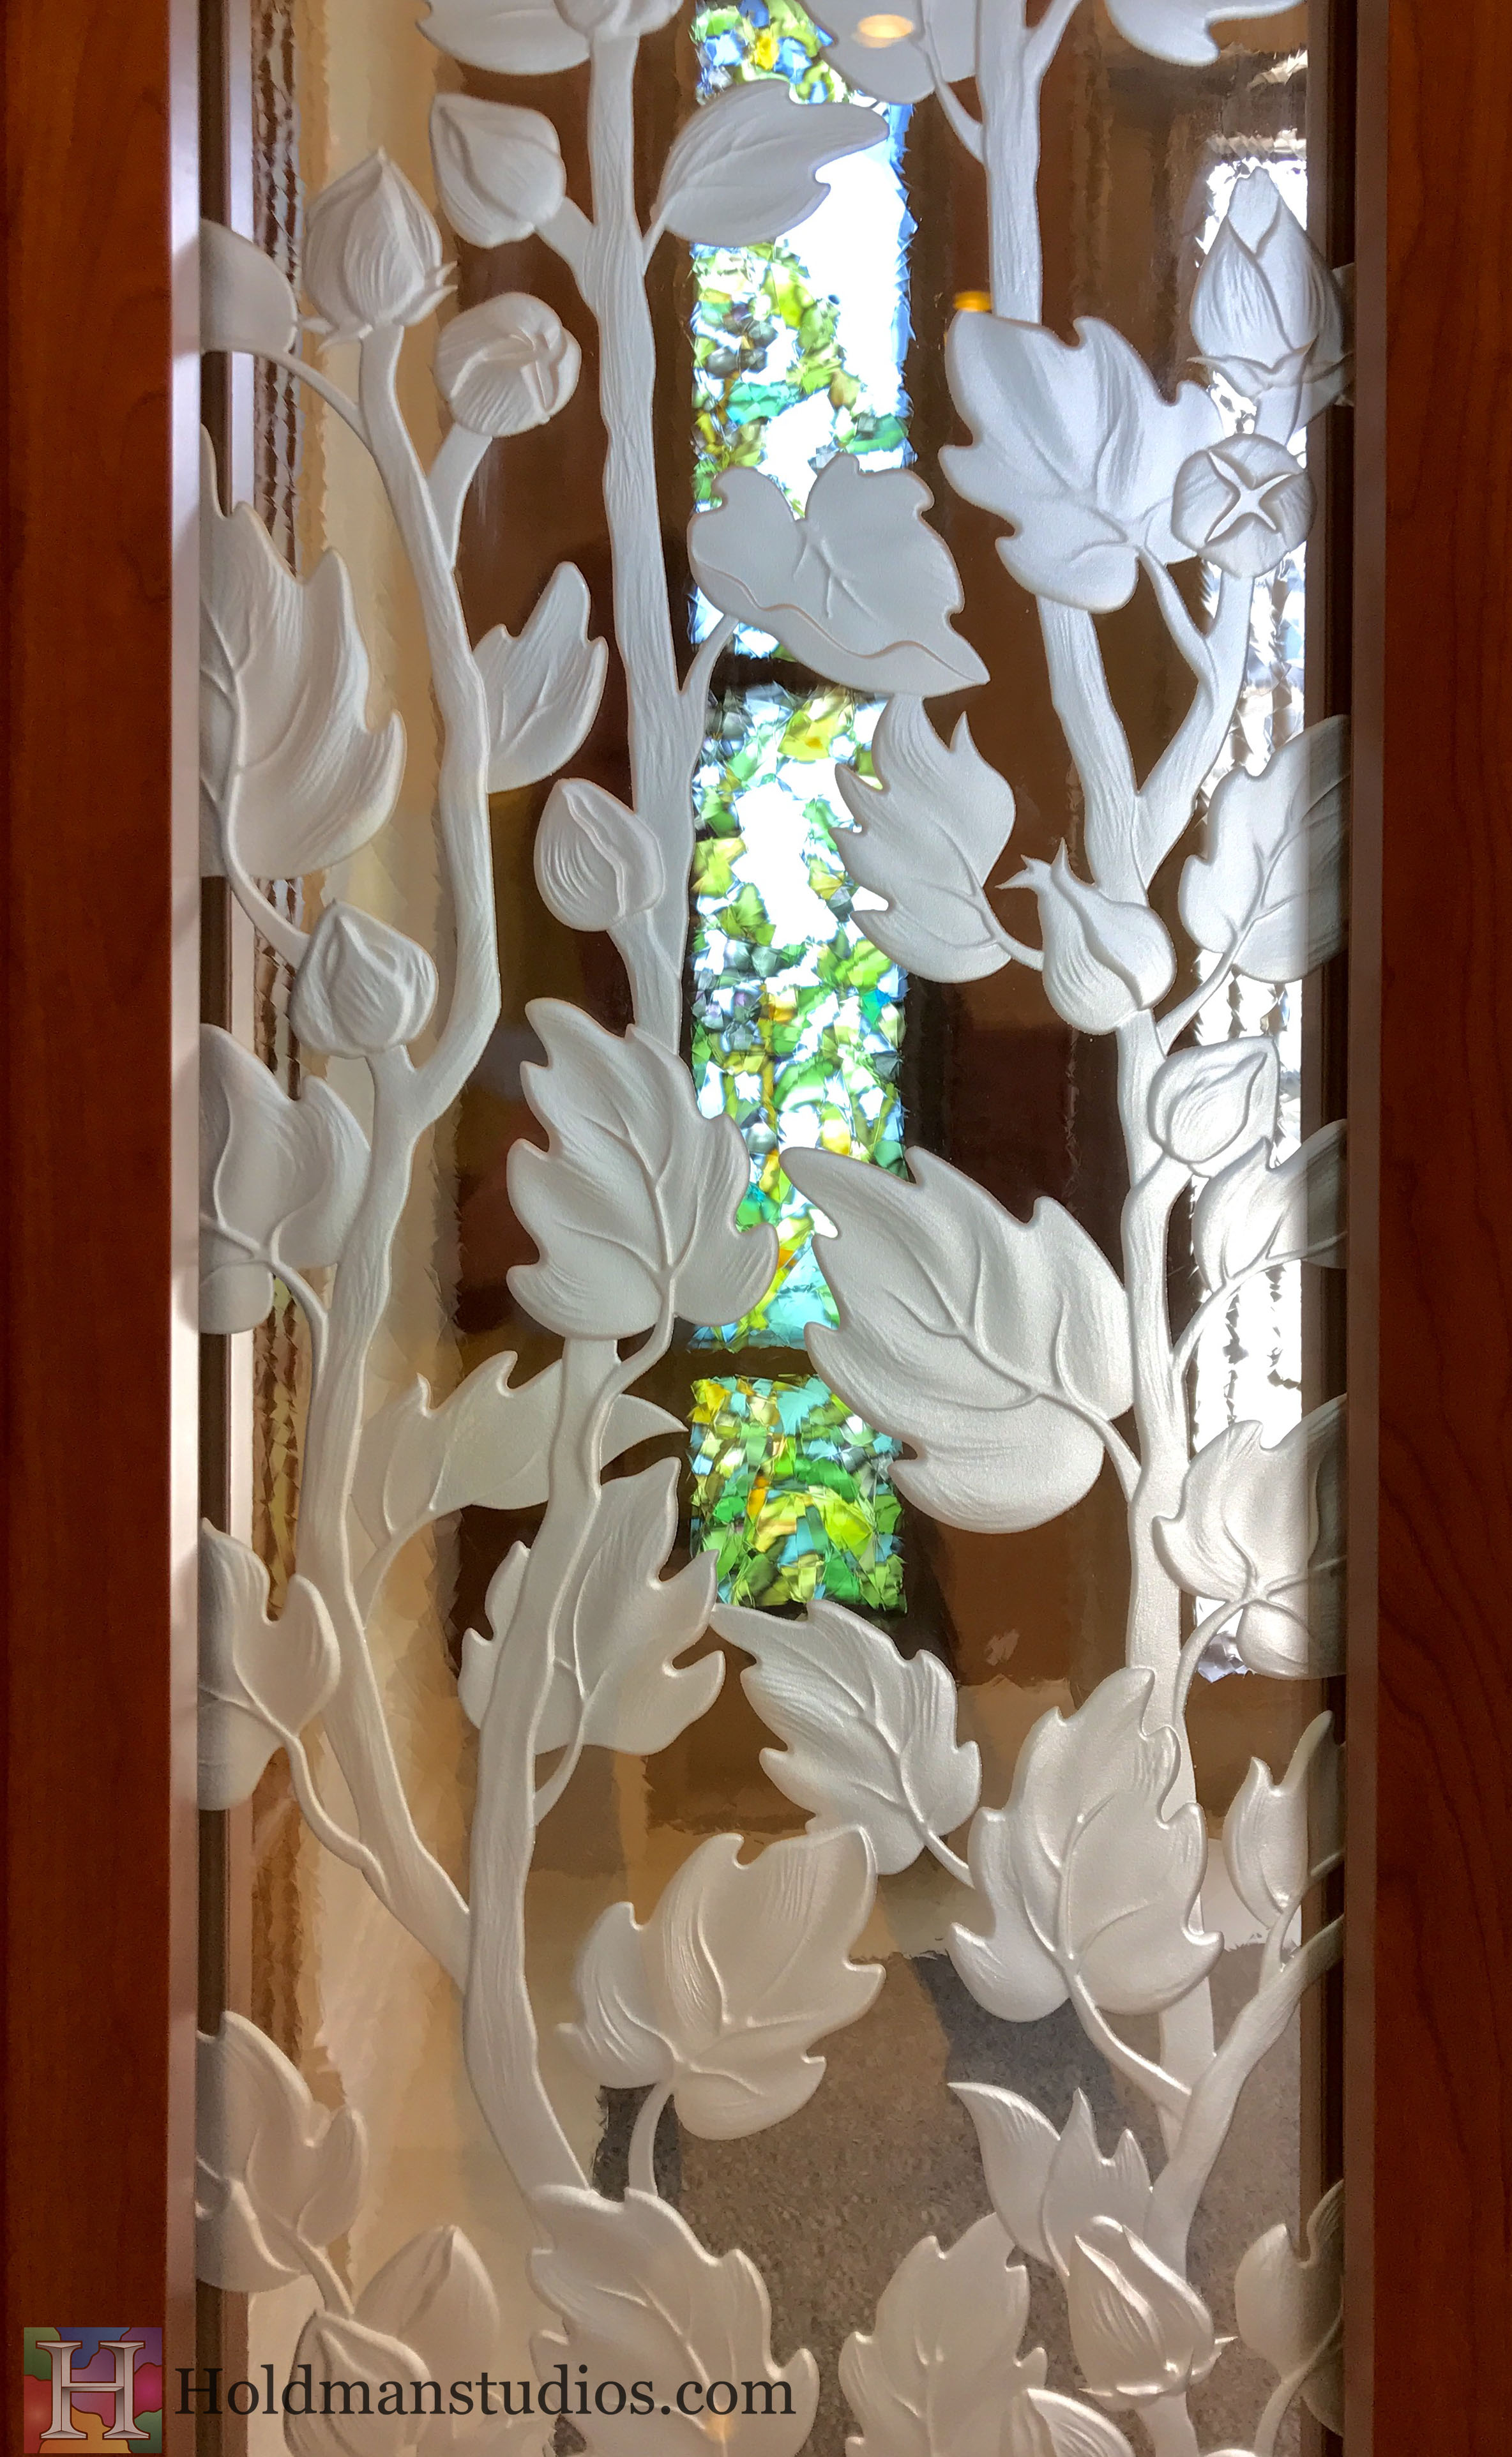 Holdman-Studios-Stained-Etched-Glass-Paris-LDS-Temple-Cornflower-Blue-Lily-Flowers-Buds-Leaves-Window.jpg